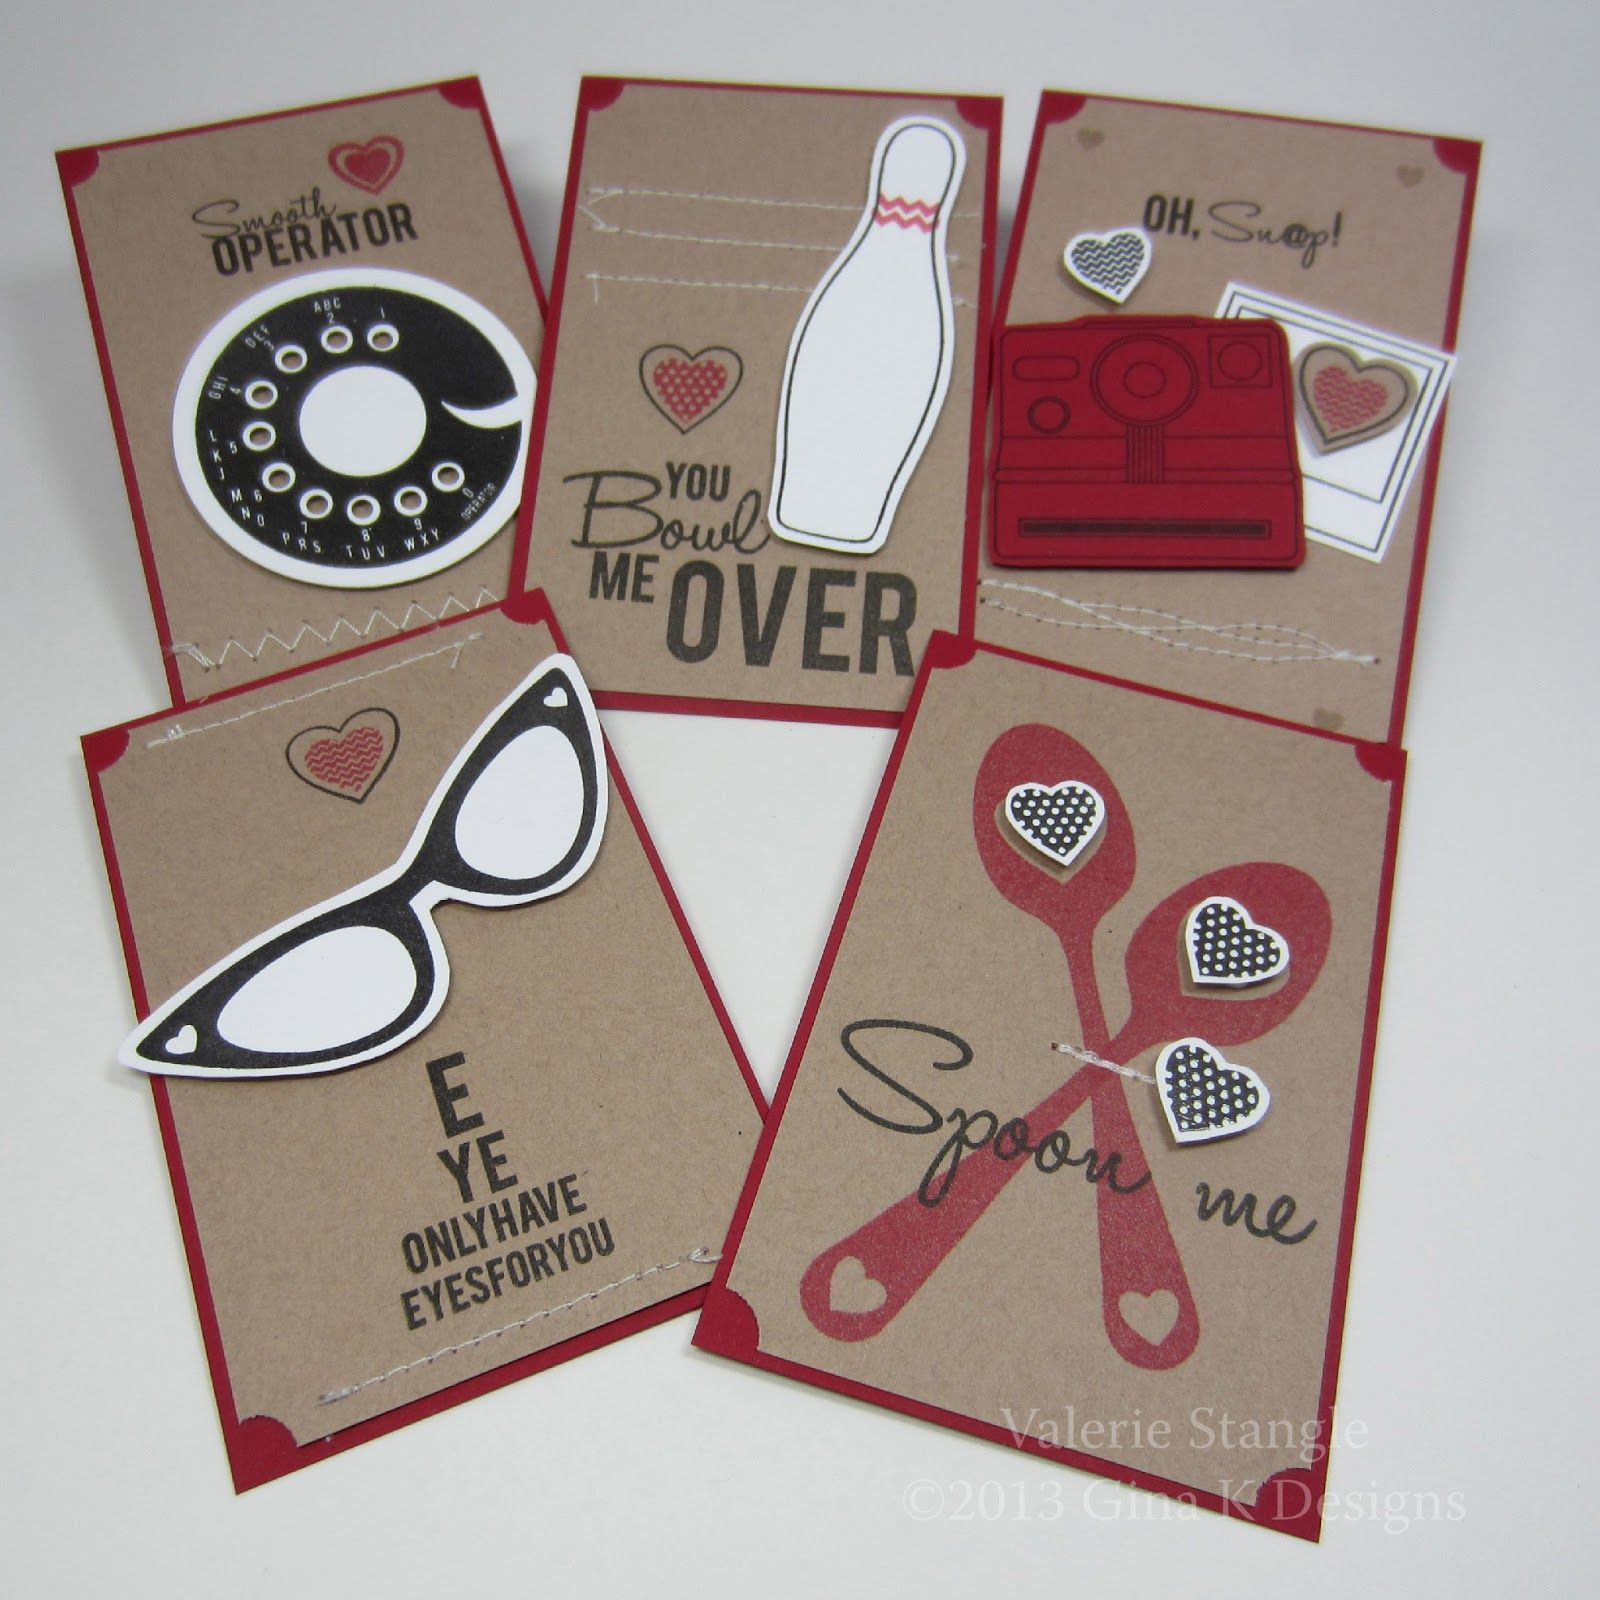 Cute valentines created by Valerie Stangle.